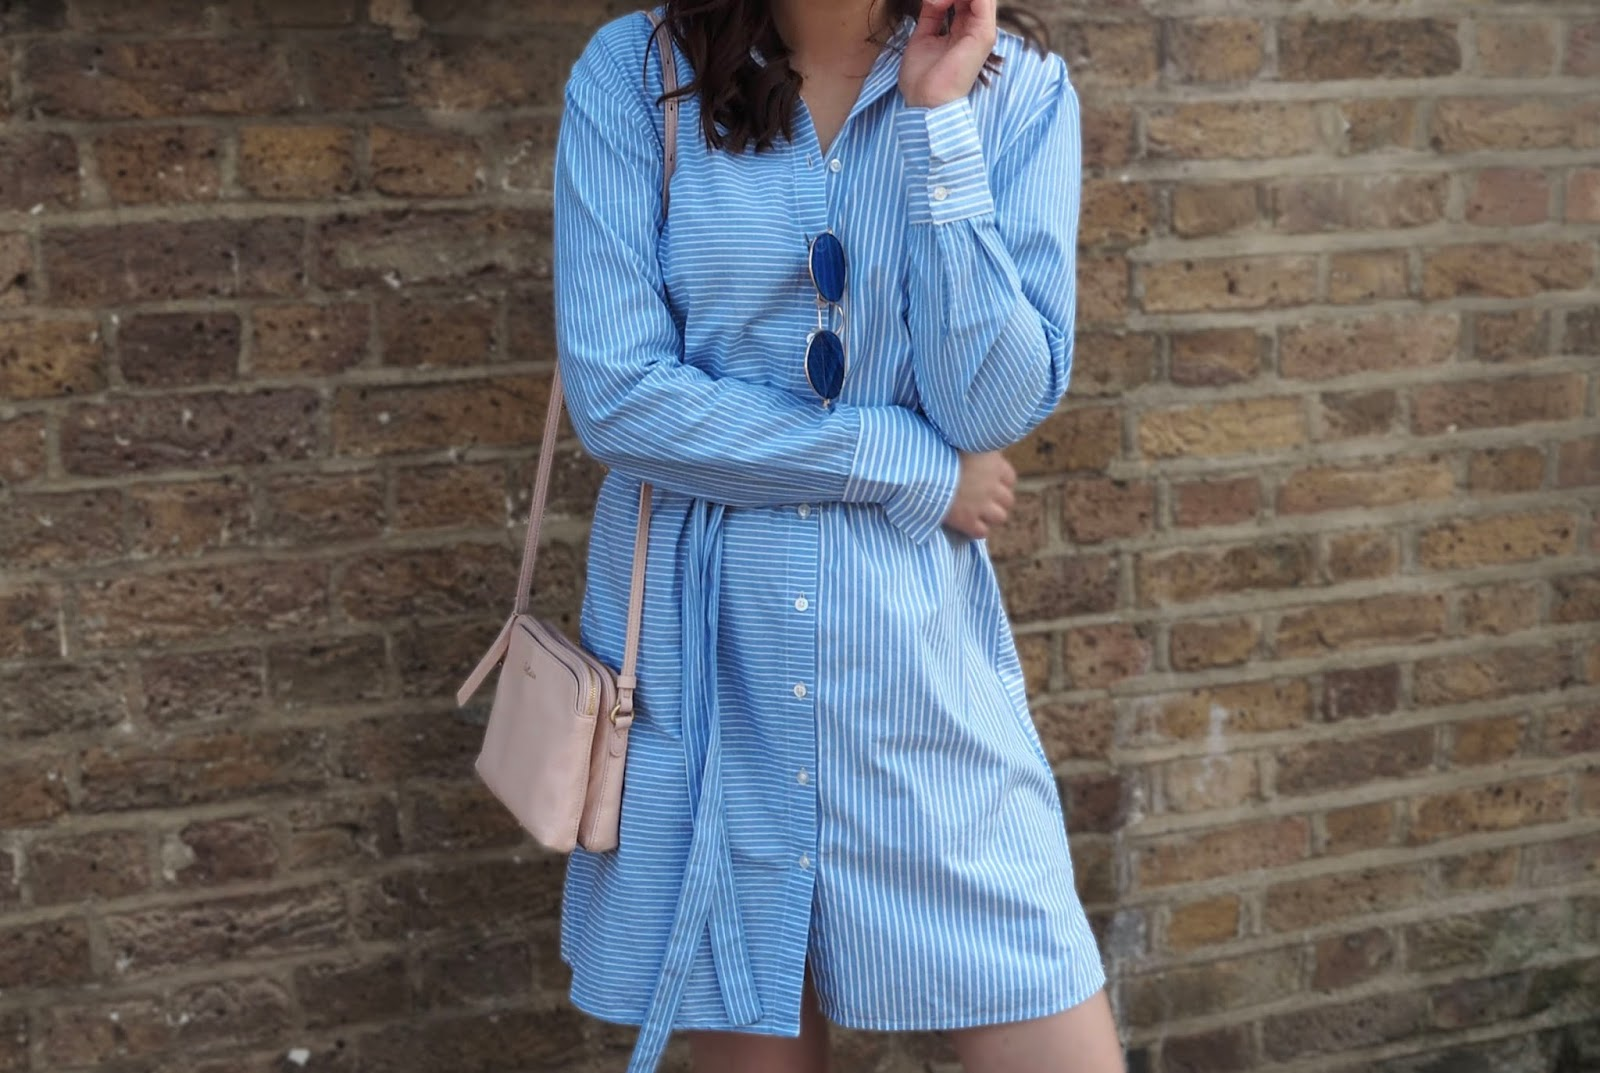 Lauren Rose Style Blue Striped New Look Summer Dress OOTD Fashion Blogger London